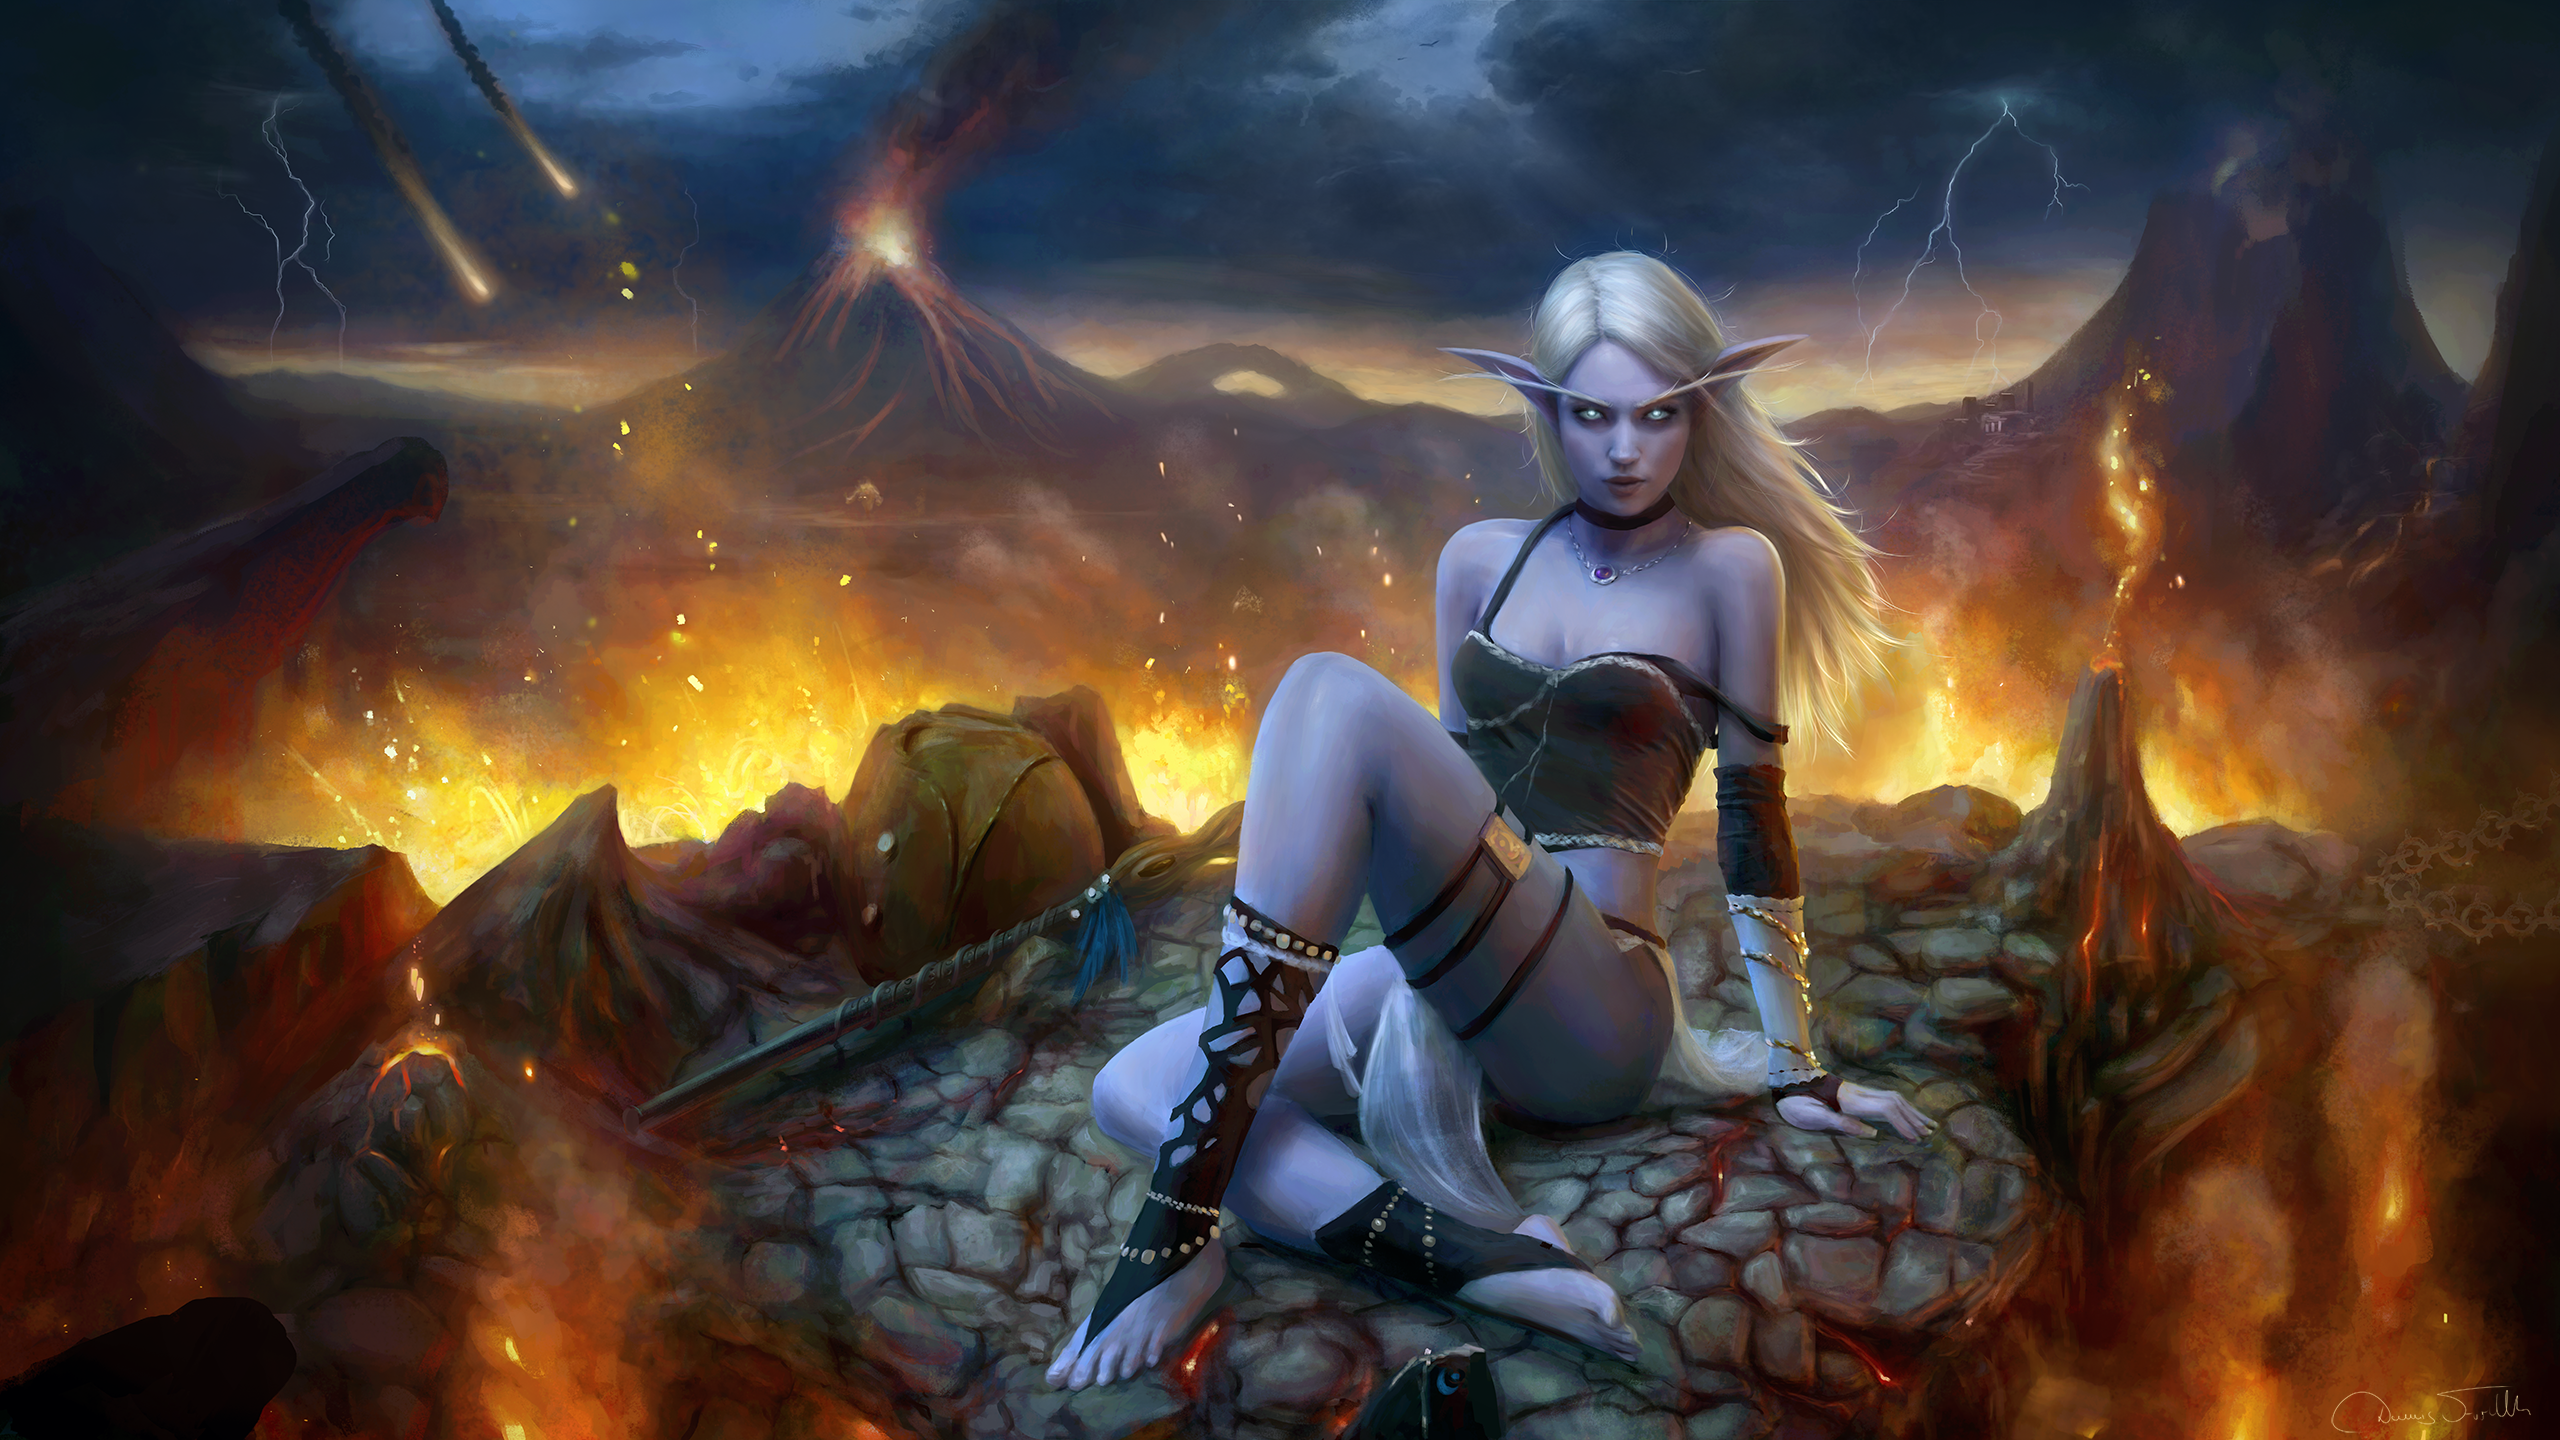 General 2560x1440 Jorsch drawing women Warcraft III: Reforged Night Elves elves silver hair long hair wind pointy ears glowing eyes frown looking at viewer choker jewelry necklace cleavage tank top straps skimpy clothes skirt fire volcano volcanic eruption burning storm lightning